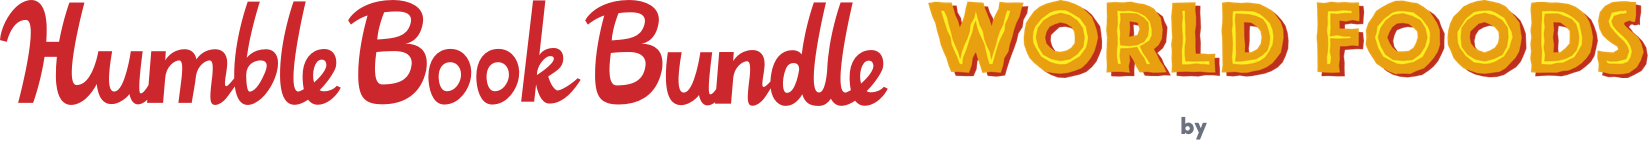 Humble Book Bundle: World Foods by Lonely Planet